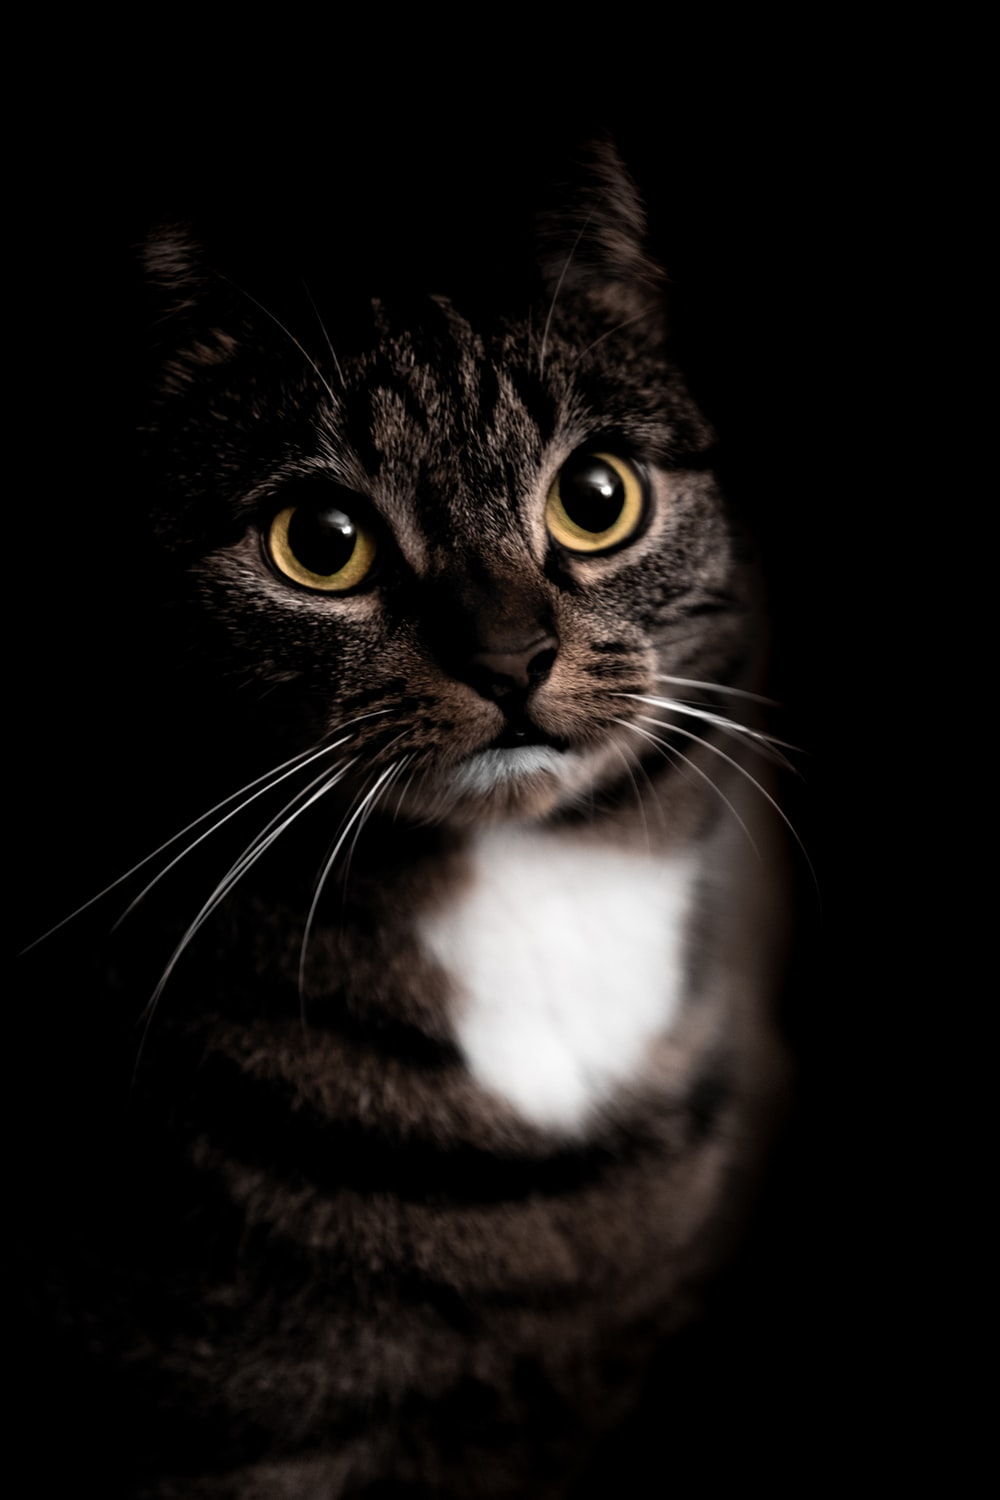 brown tabby cat in black background